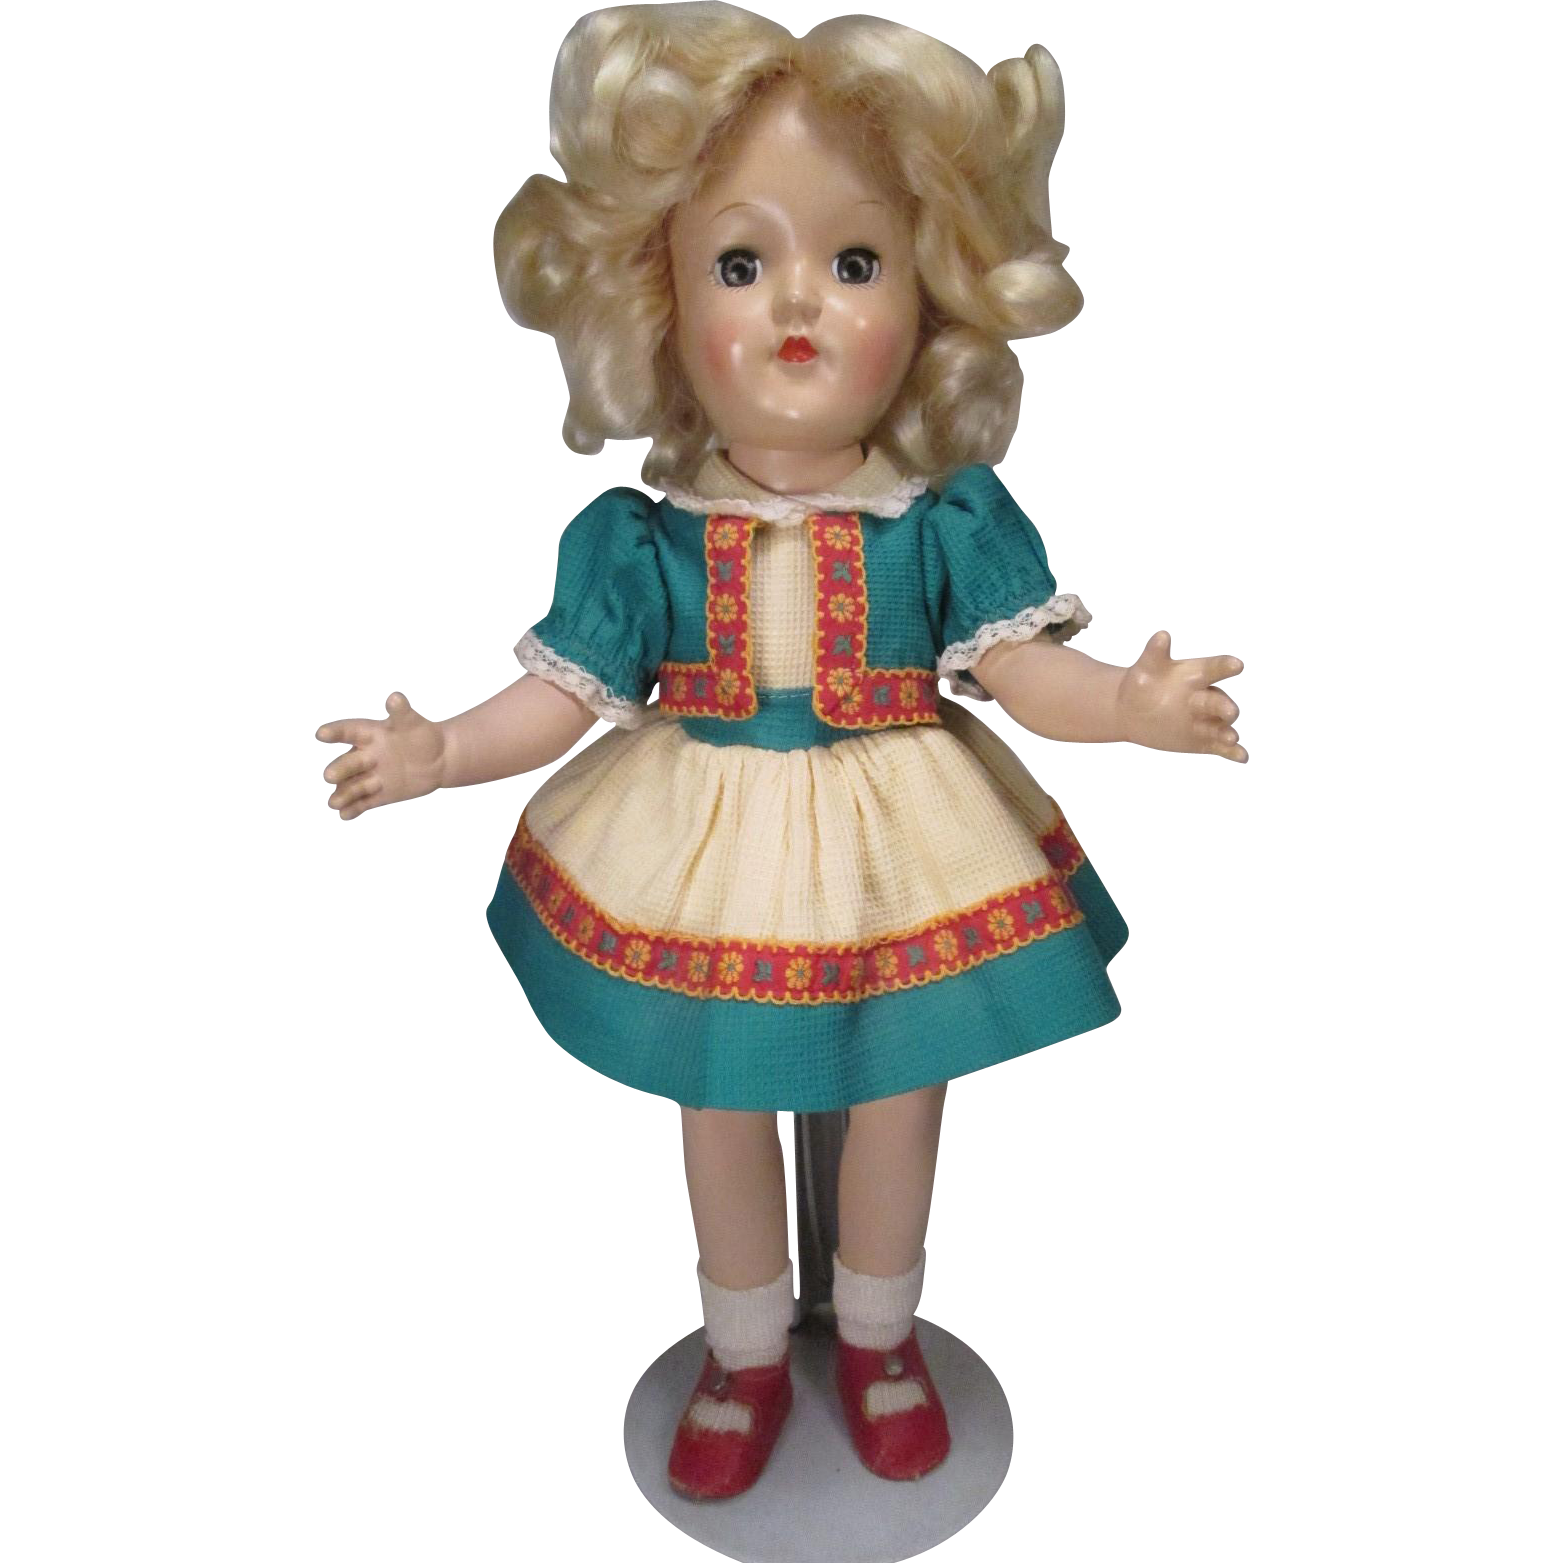 P-90 P90 Ideal Hard Plastic Toni Doll in Original Outfit - 1949-1953